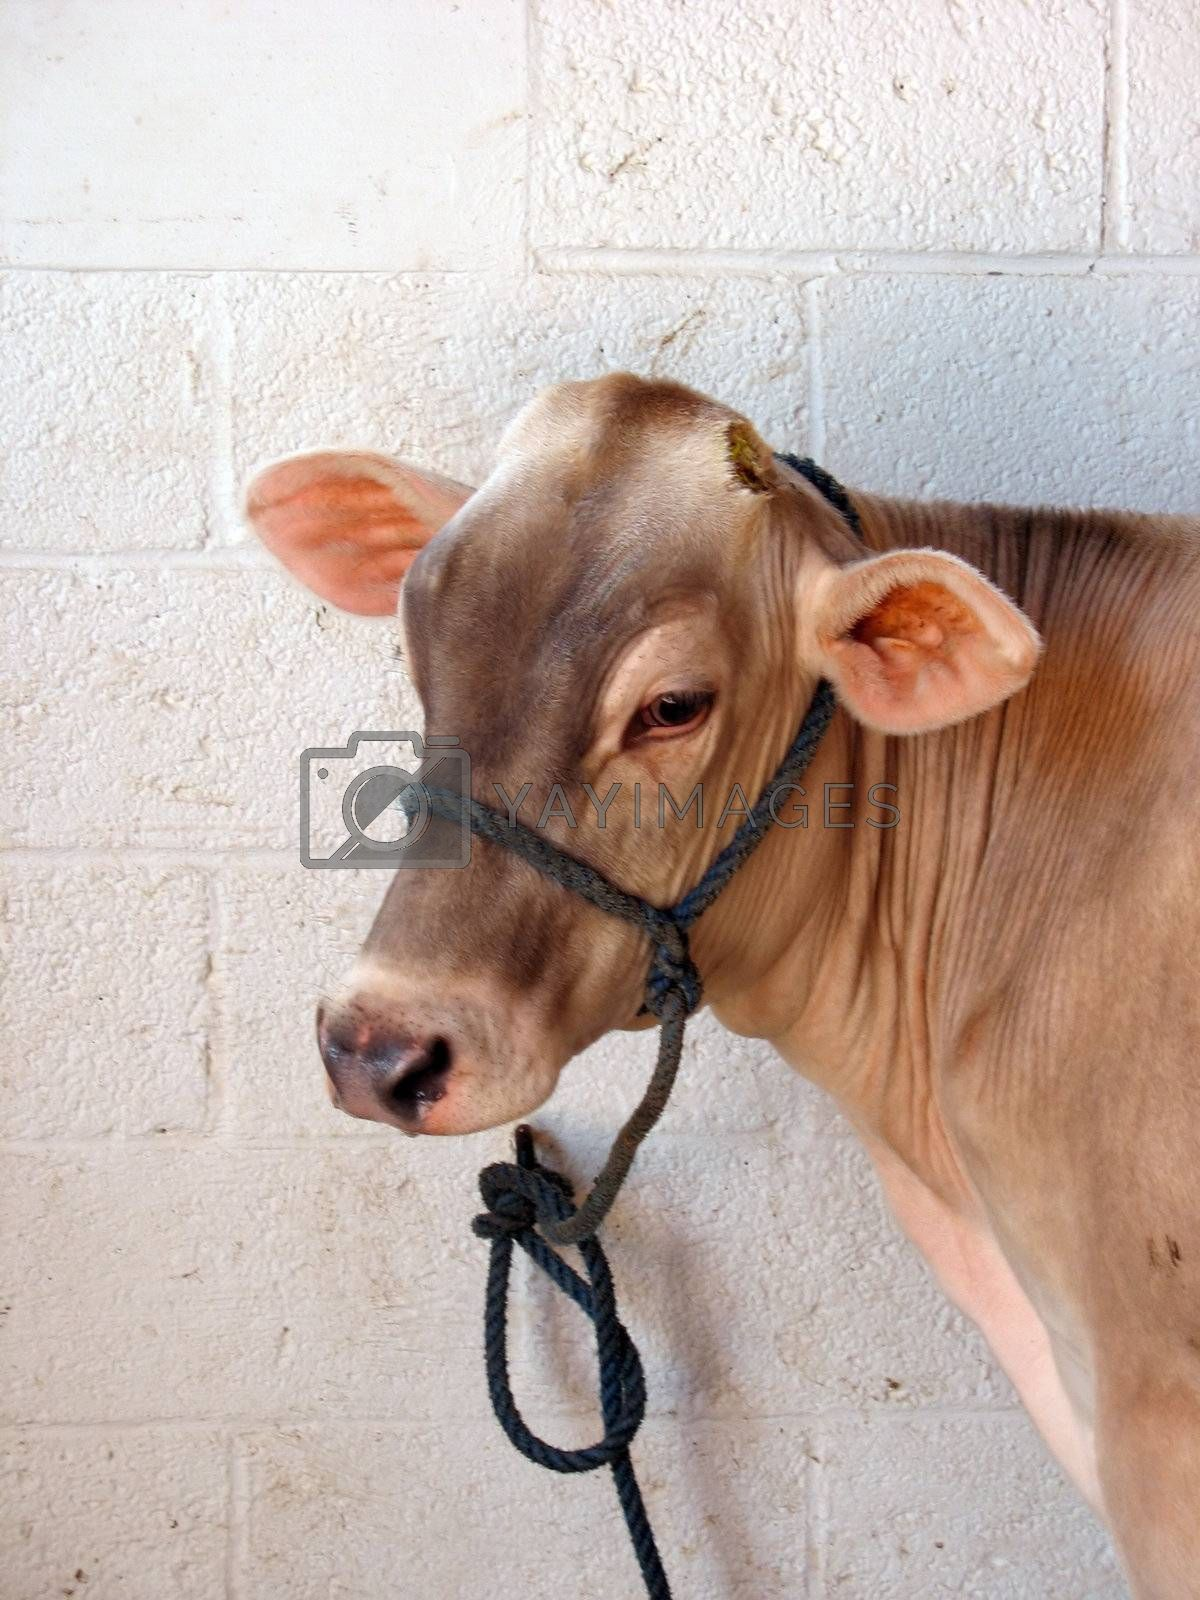 A lonely cow hanging out in the dairy barn.